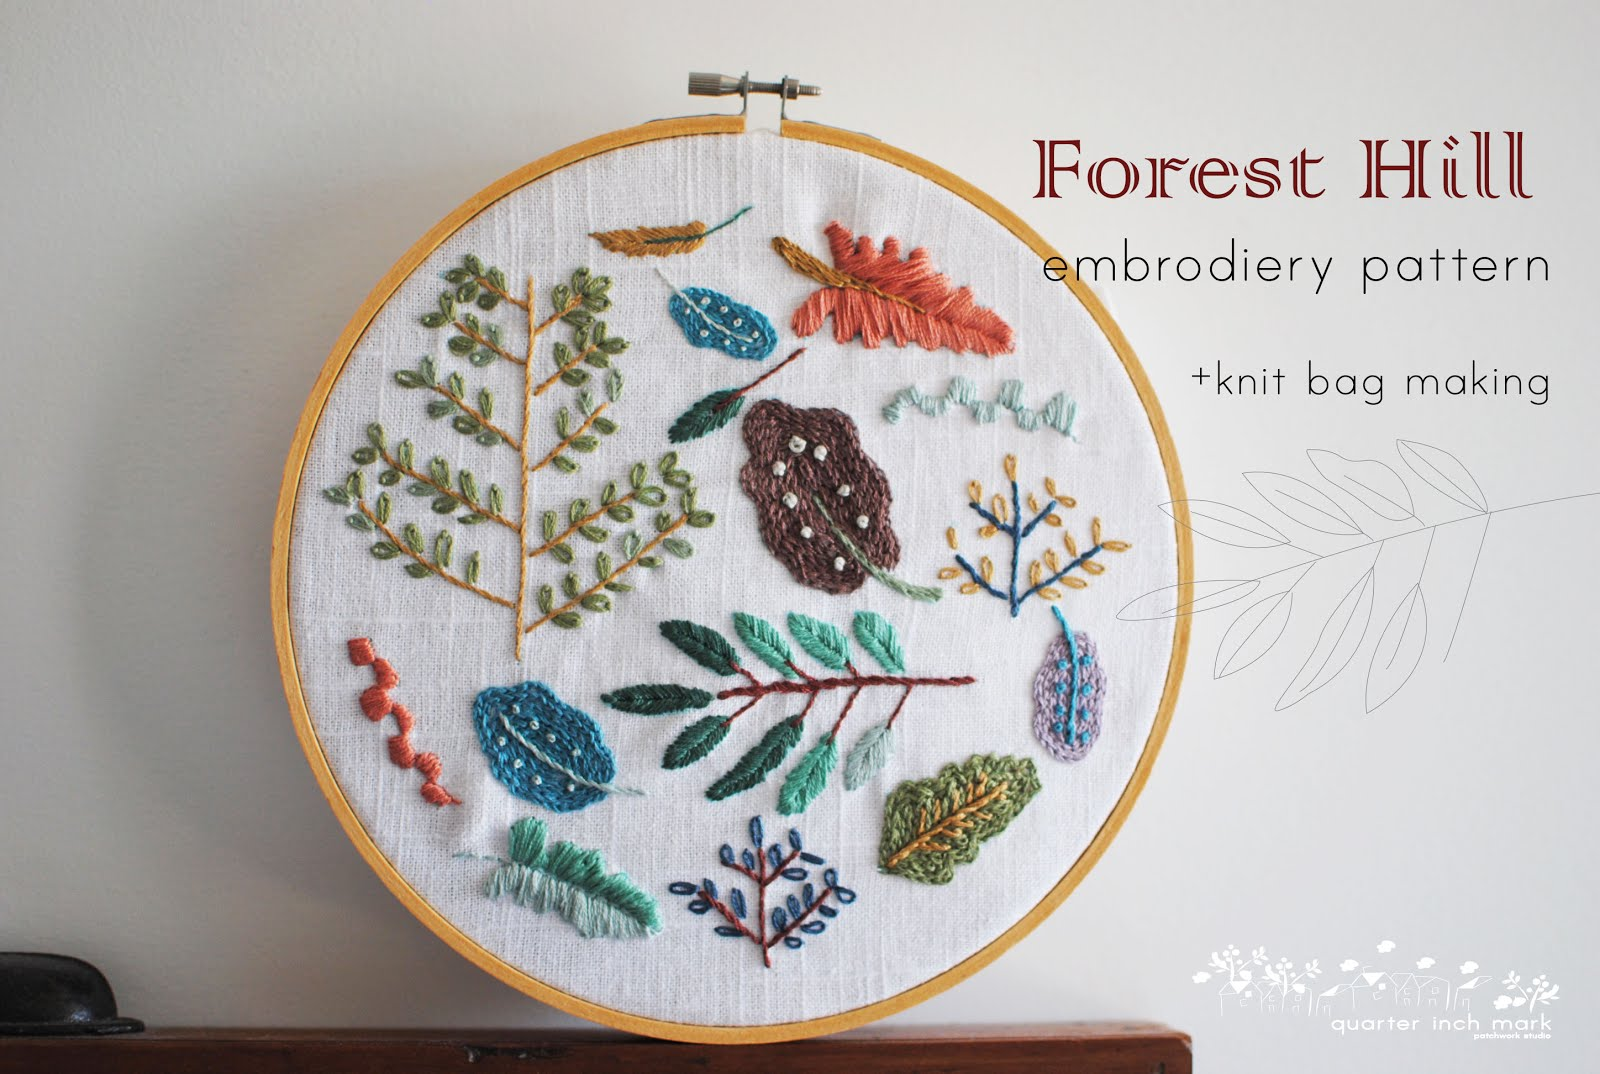 Forest Hill Embroidery Patter+knit bag making